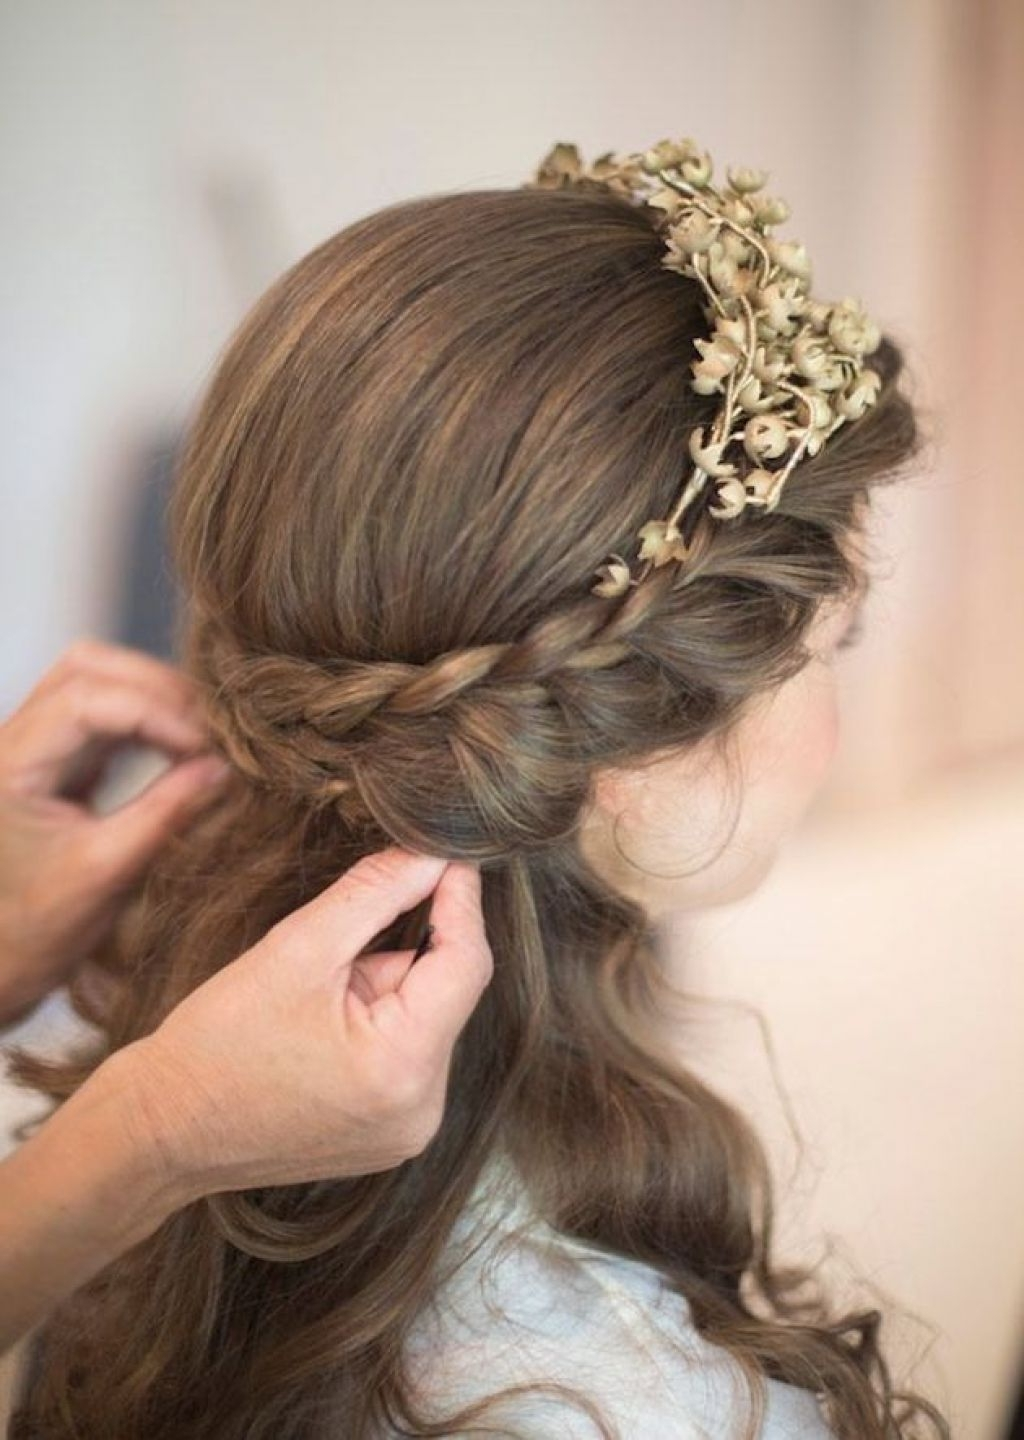 Wedding Hairstyles For Medium Length Hair Half Up Down 50Th Within Half Hair Updos For Medium Length Hair (View 15 of 15)